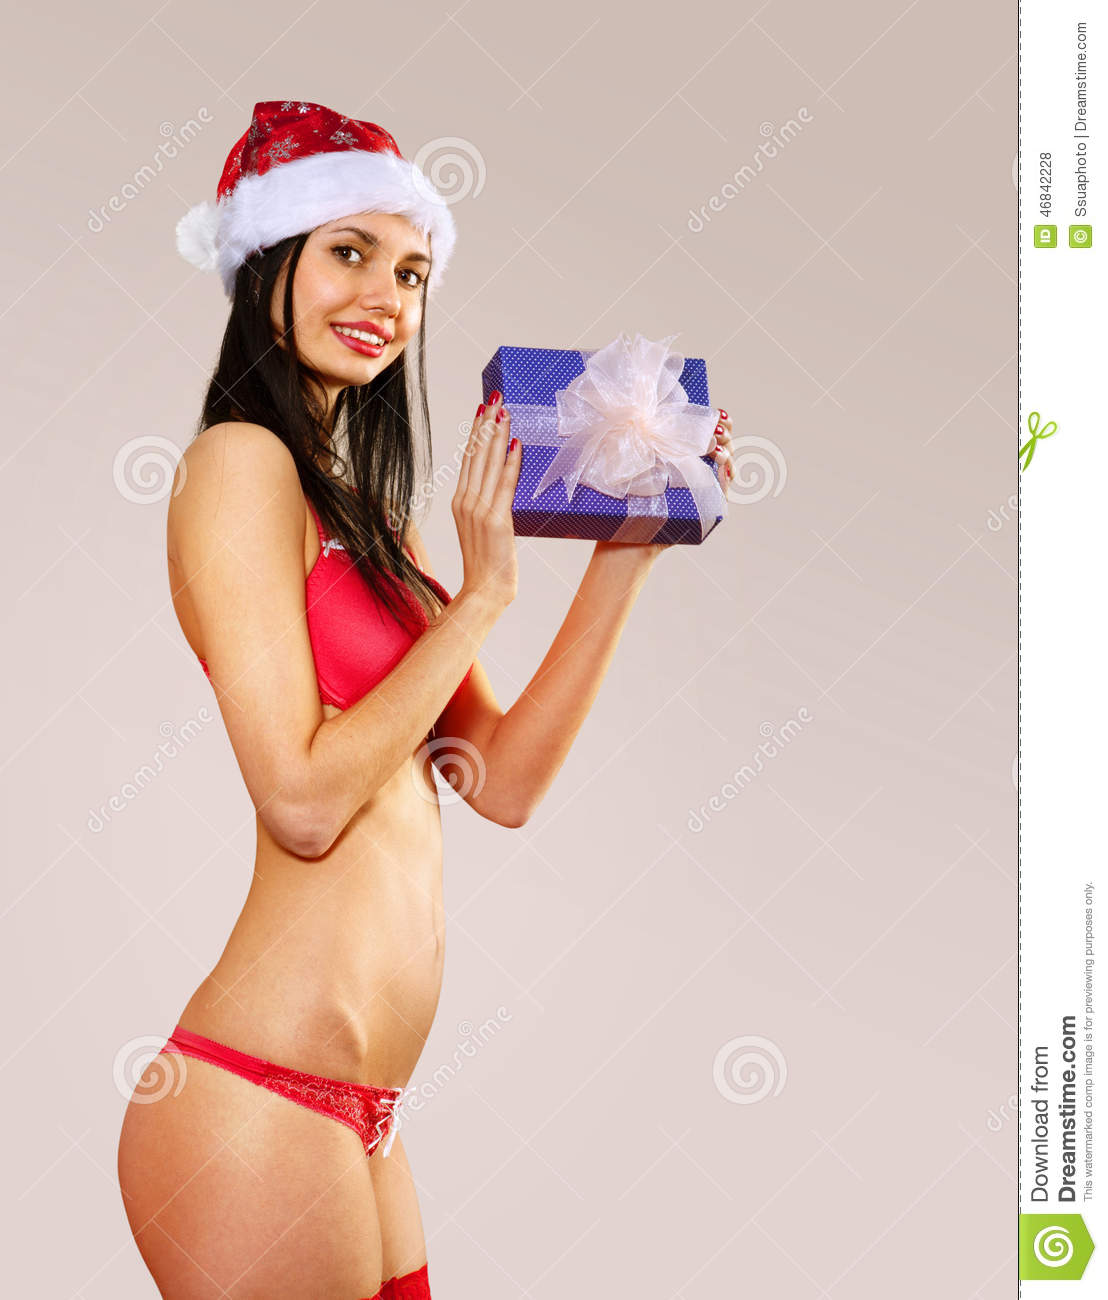 Beautiful mrs claus with gift wearing in red bikini costume isolated.